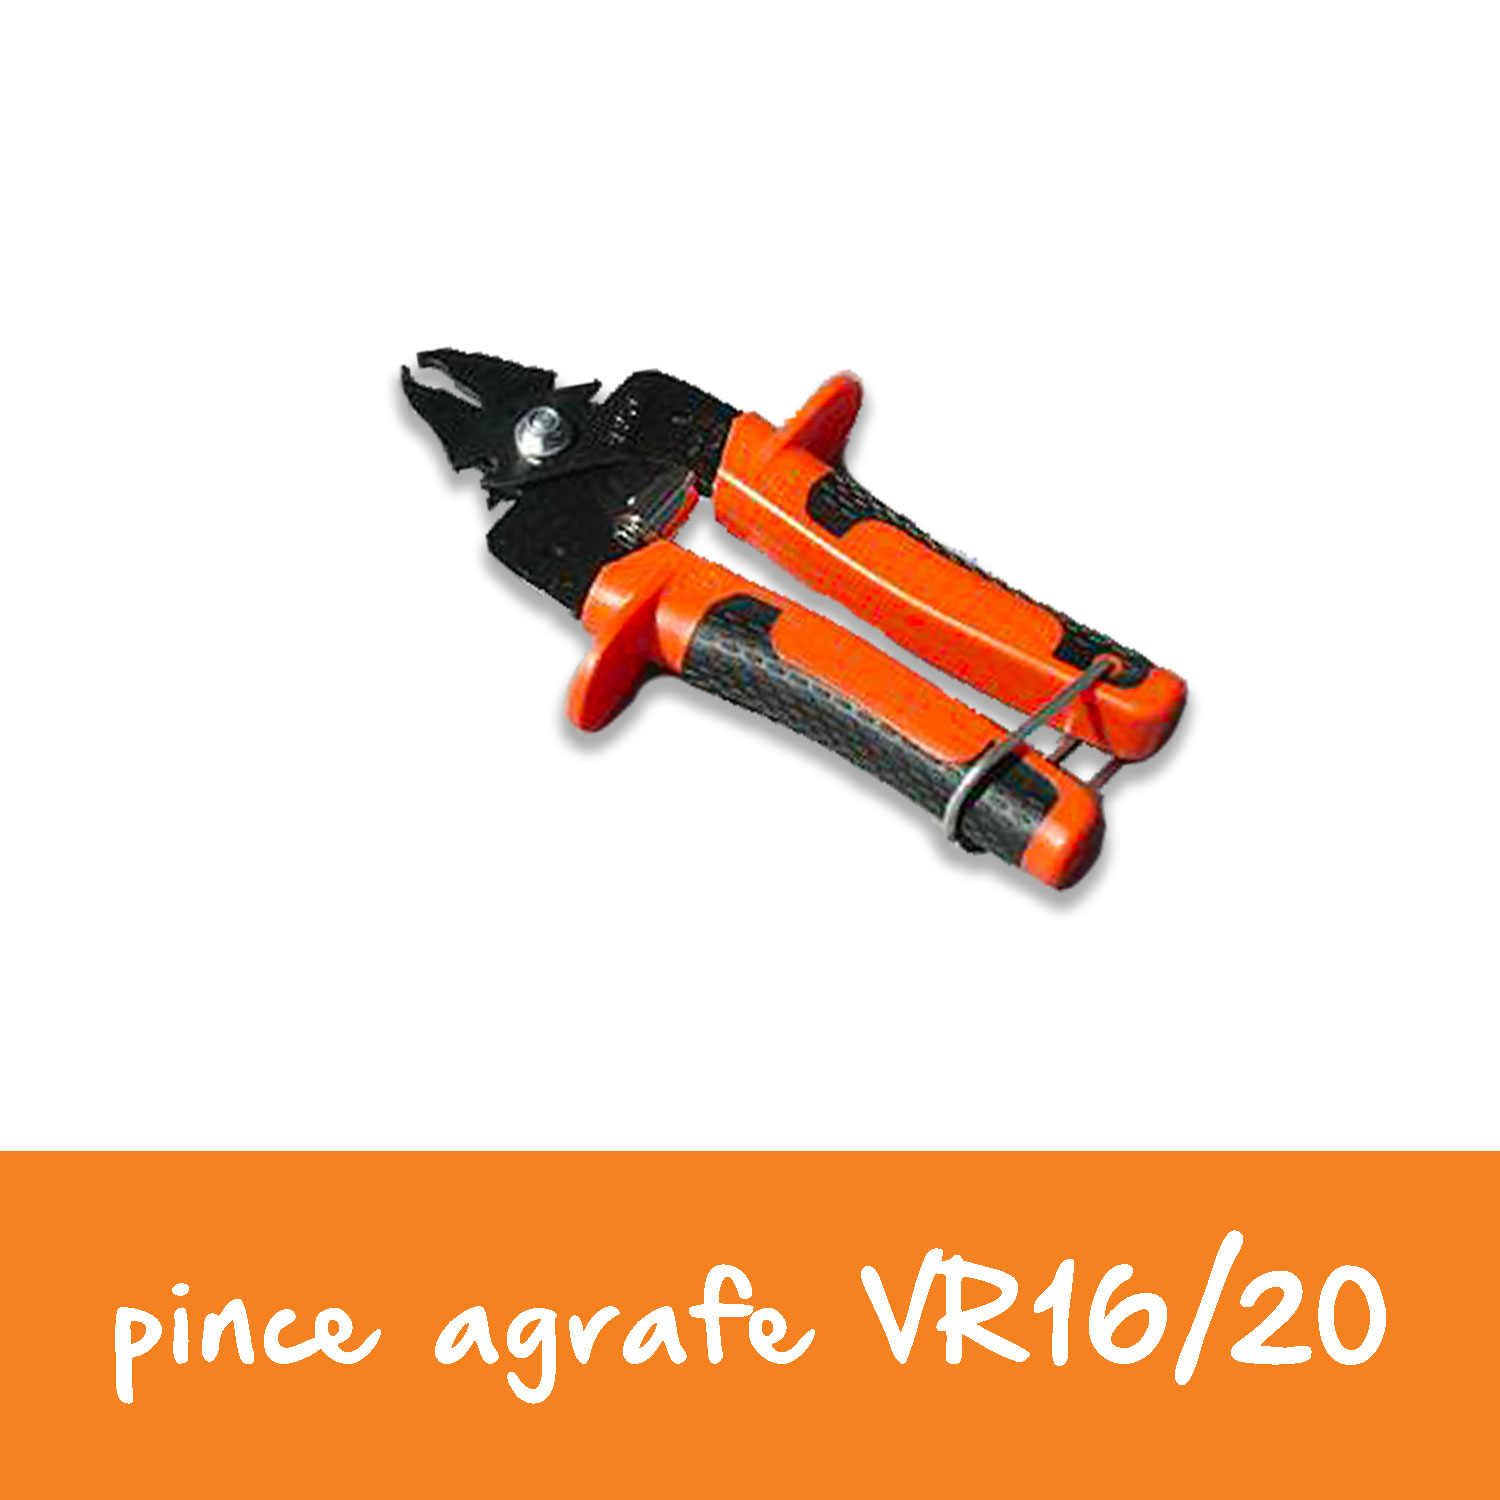 Pince agrafe pour VR16/VR20